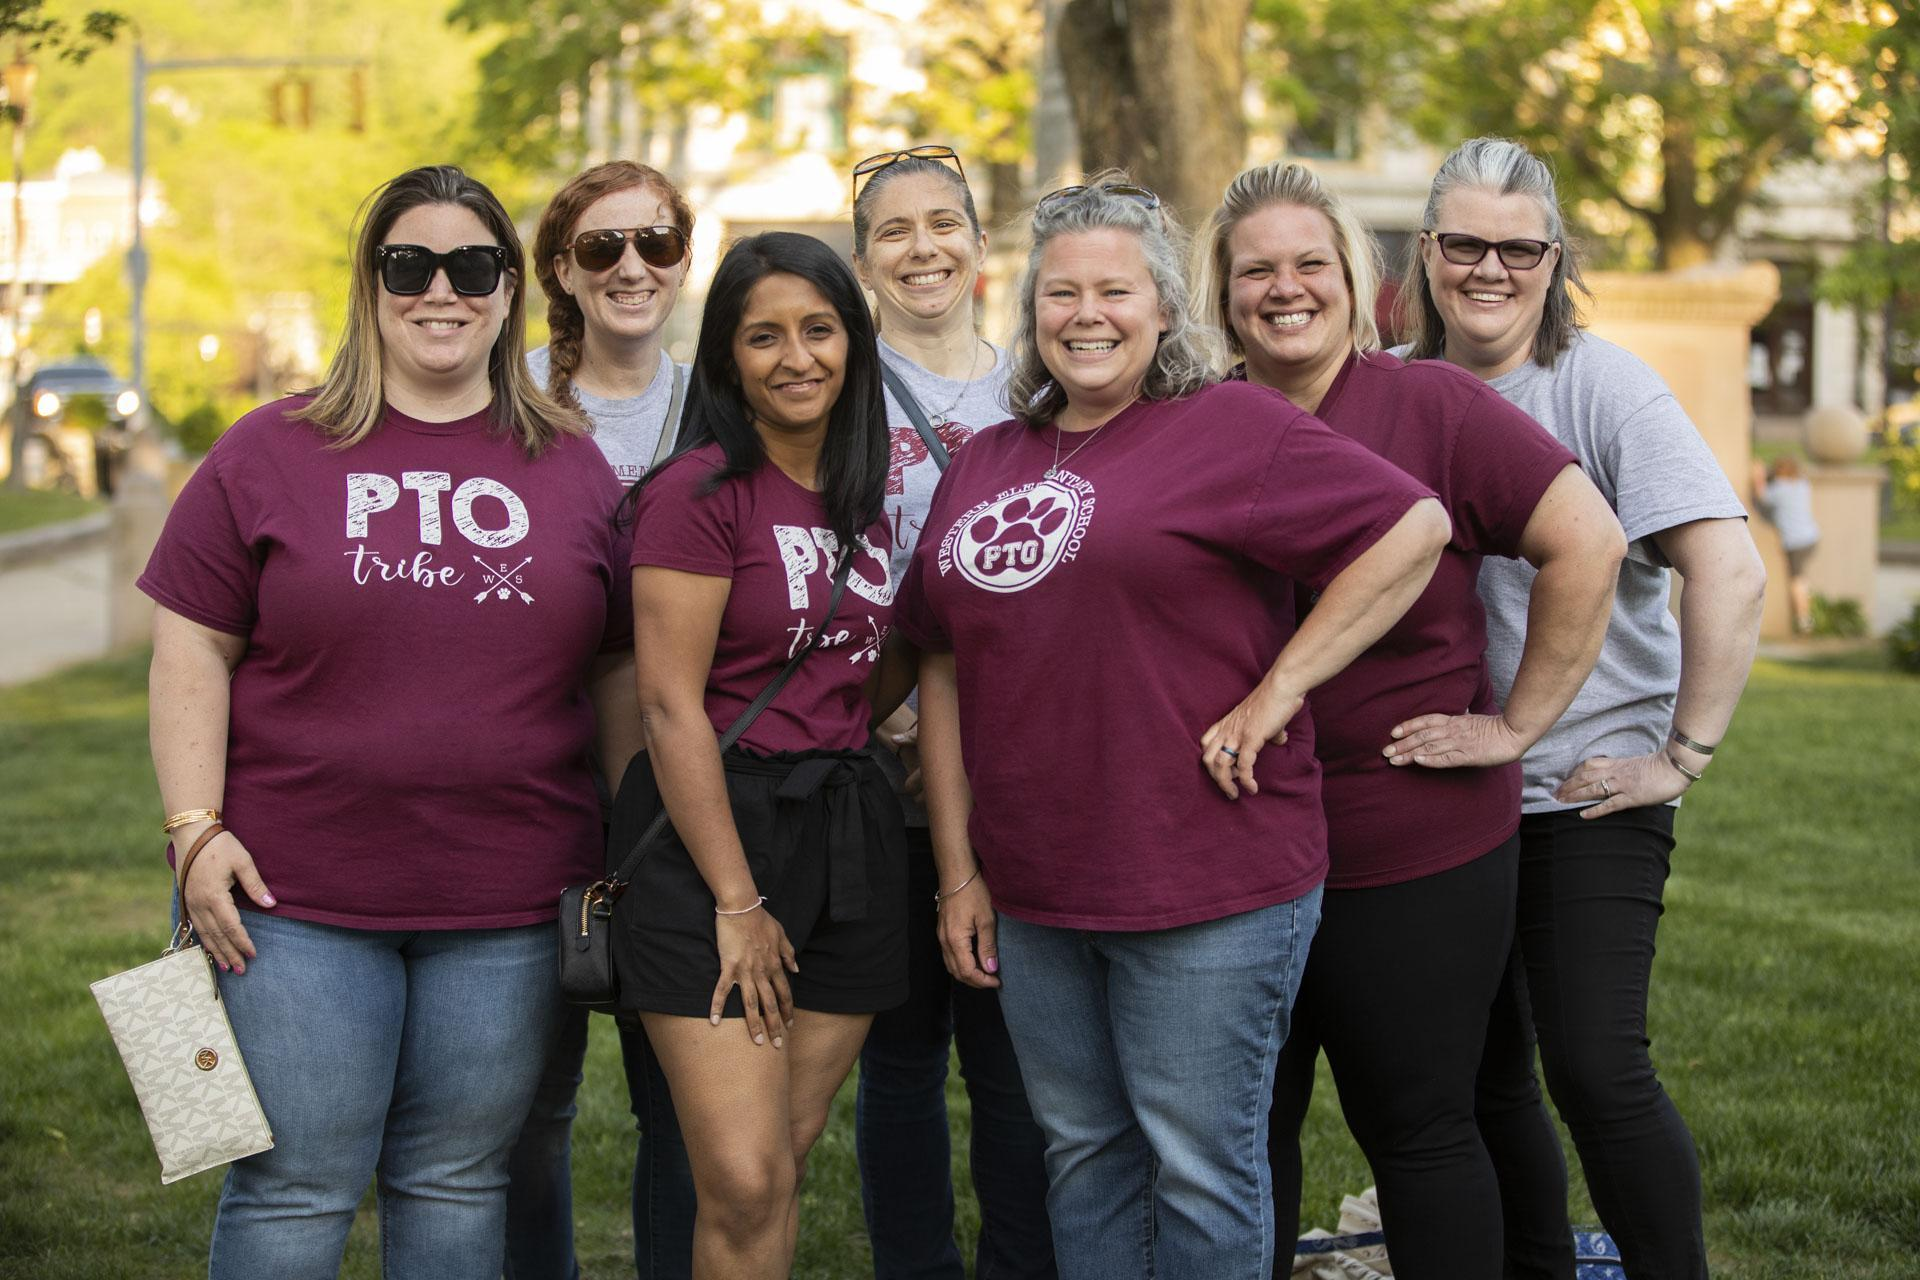 Western PTO members posing for a photo